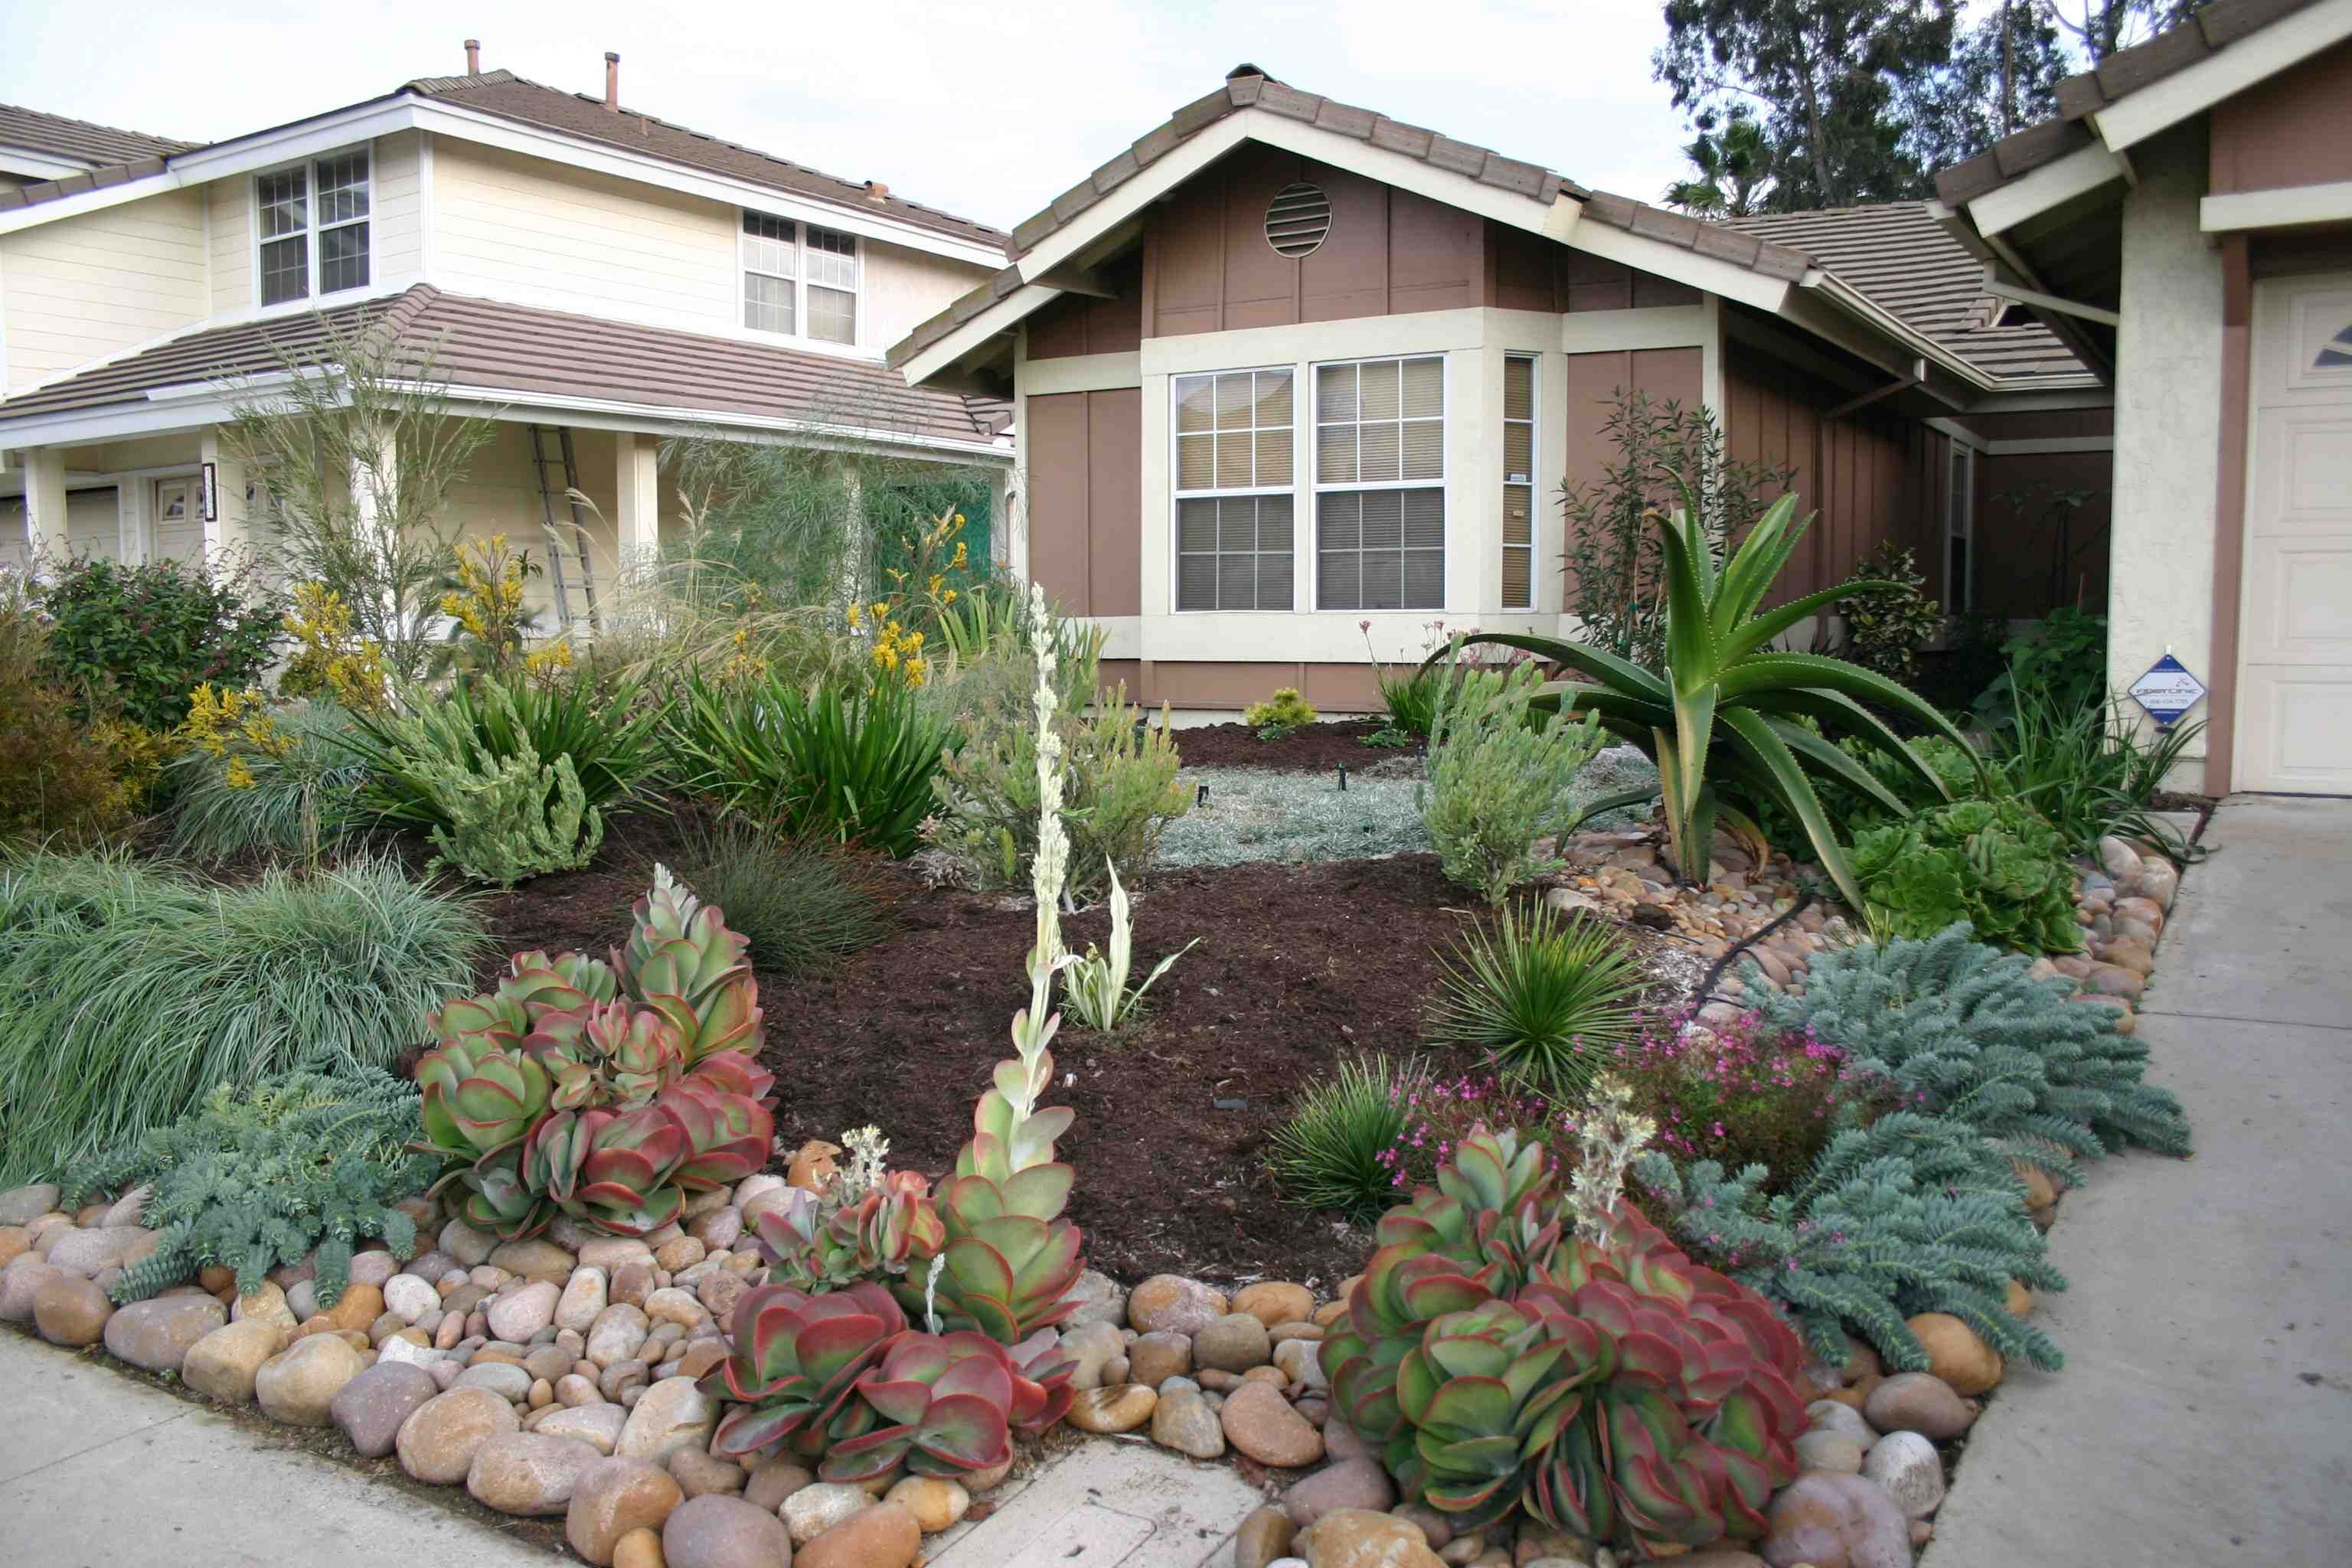 Suburban Front Yard Landscaping Ideas Part - 15: Lawnless Front Yard, Northern California | Home » Landscape Plan »  Minimalis Drought Tolerant Landscaping